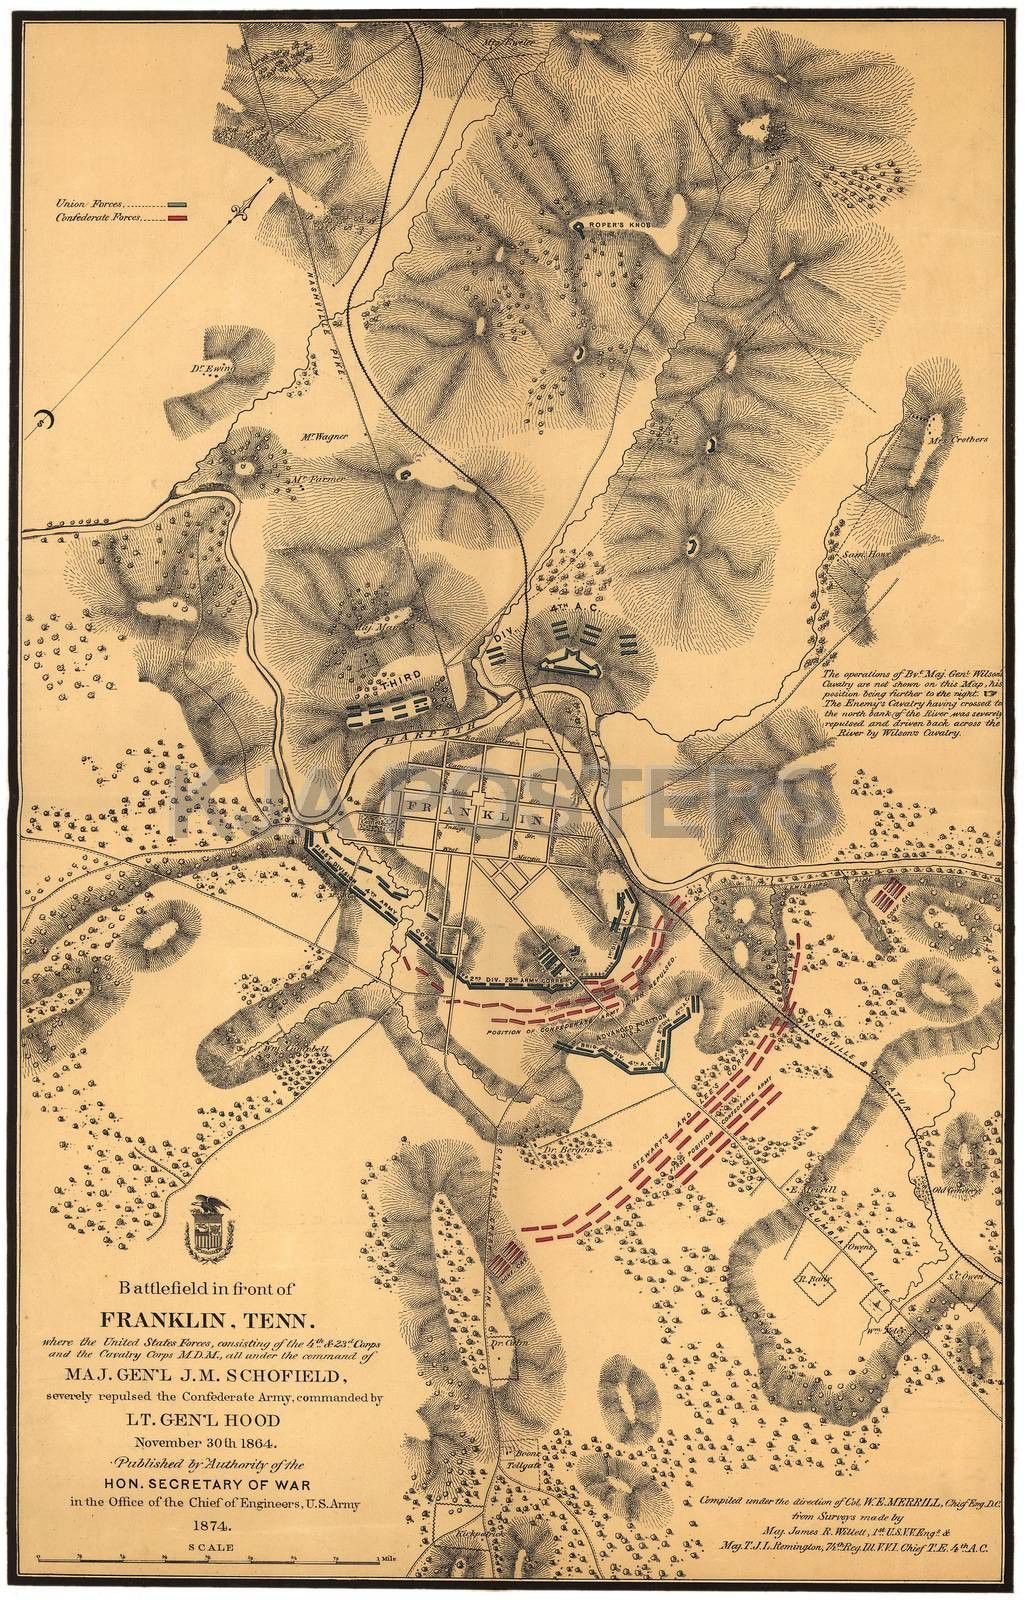 Civil War Battlefield Of Franklin Tennessee map | Products ...